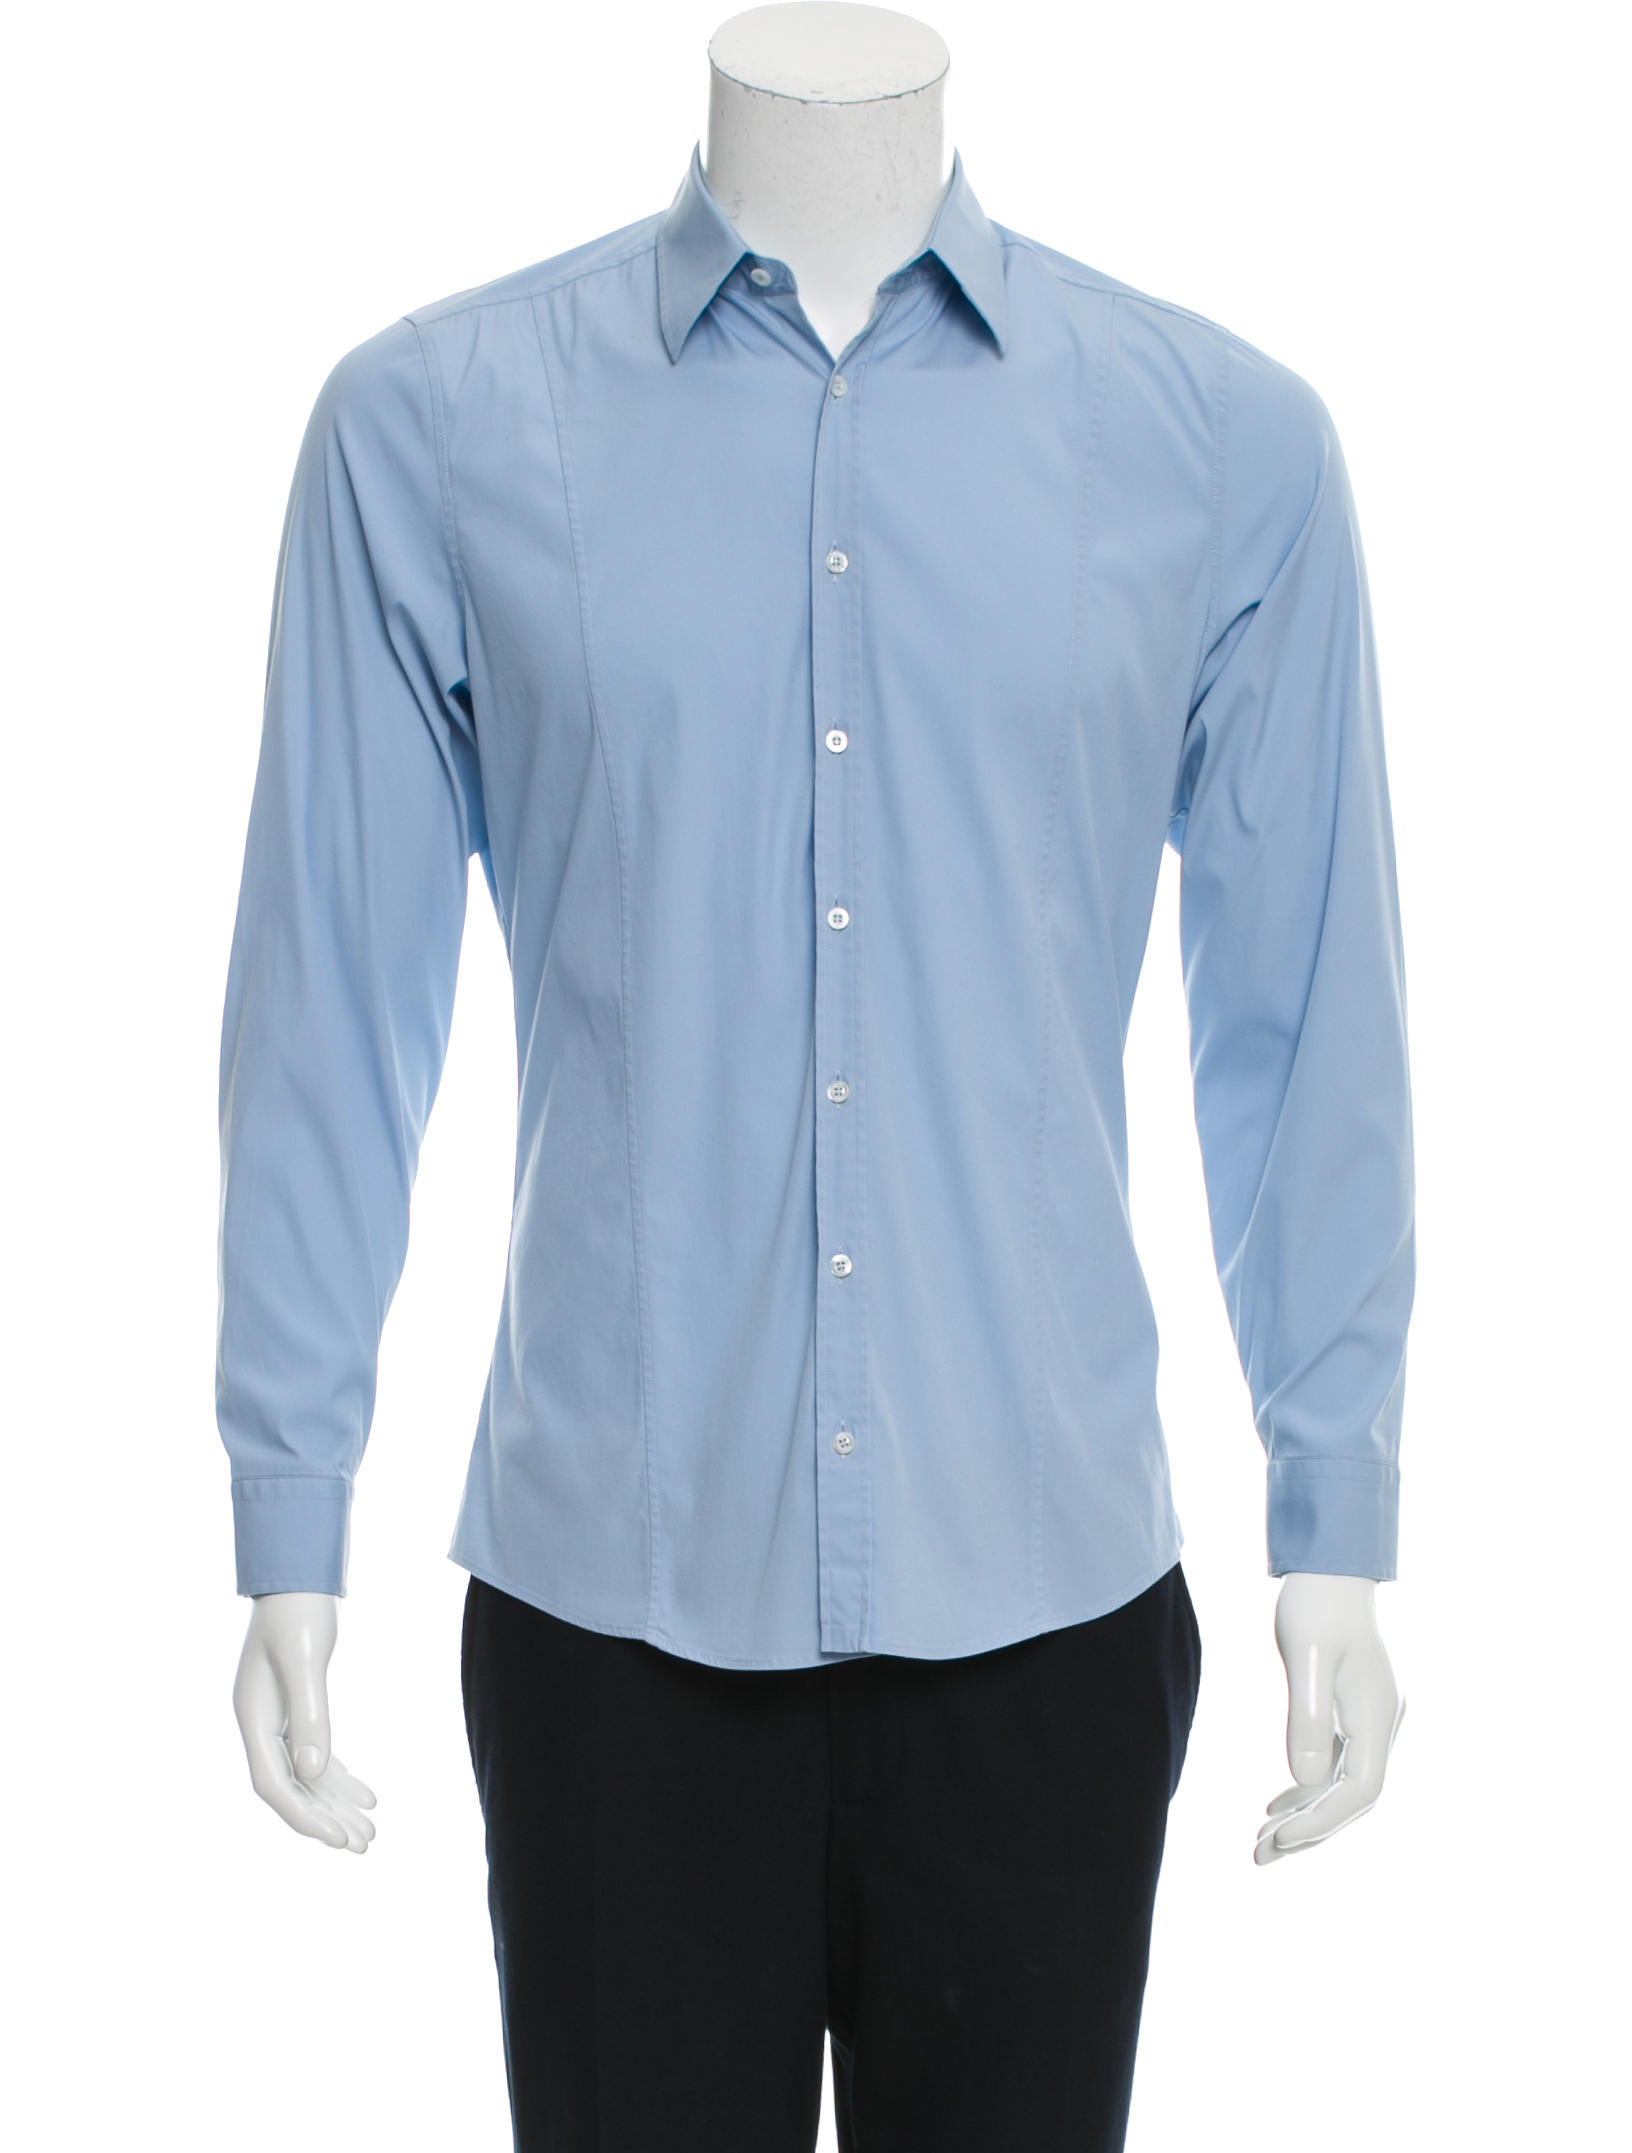 gucci slim fit button up shirt clothing guc146583